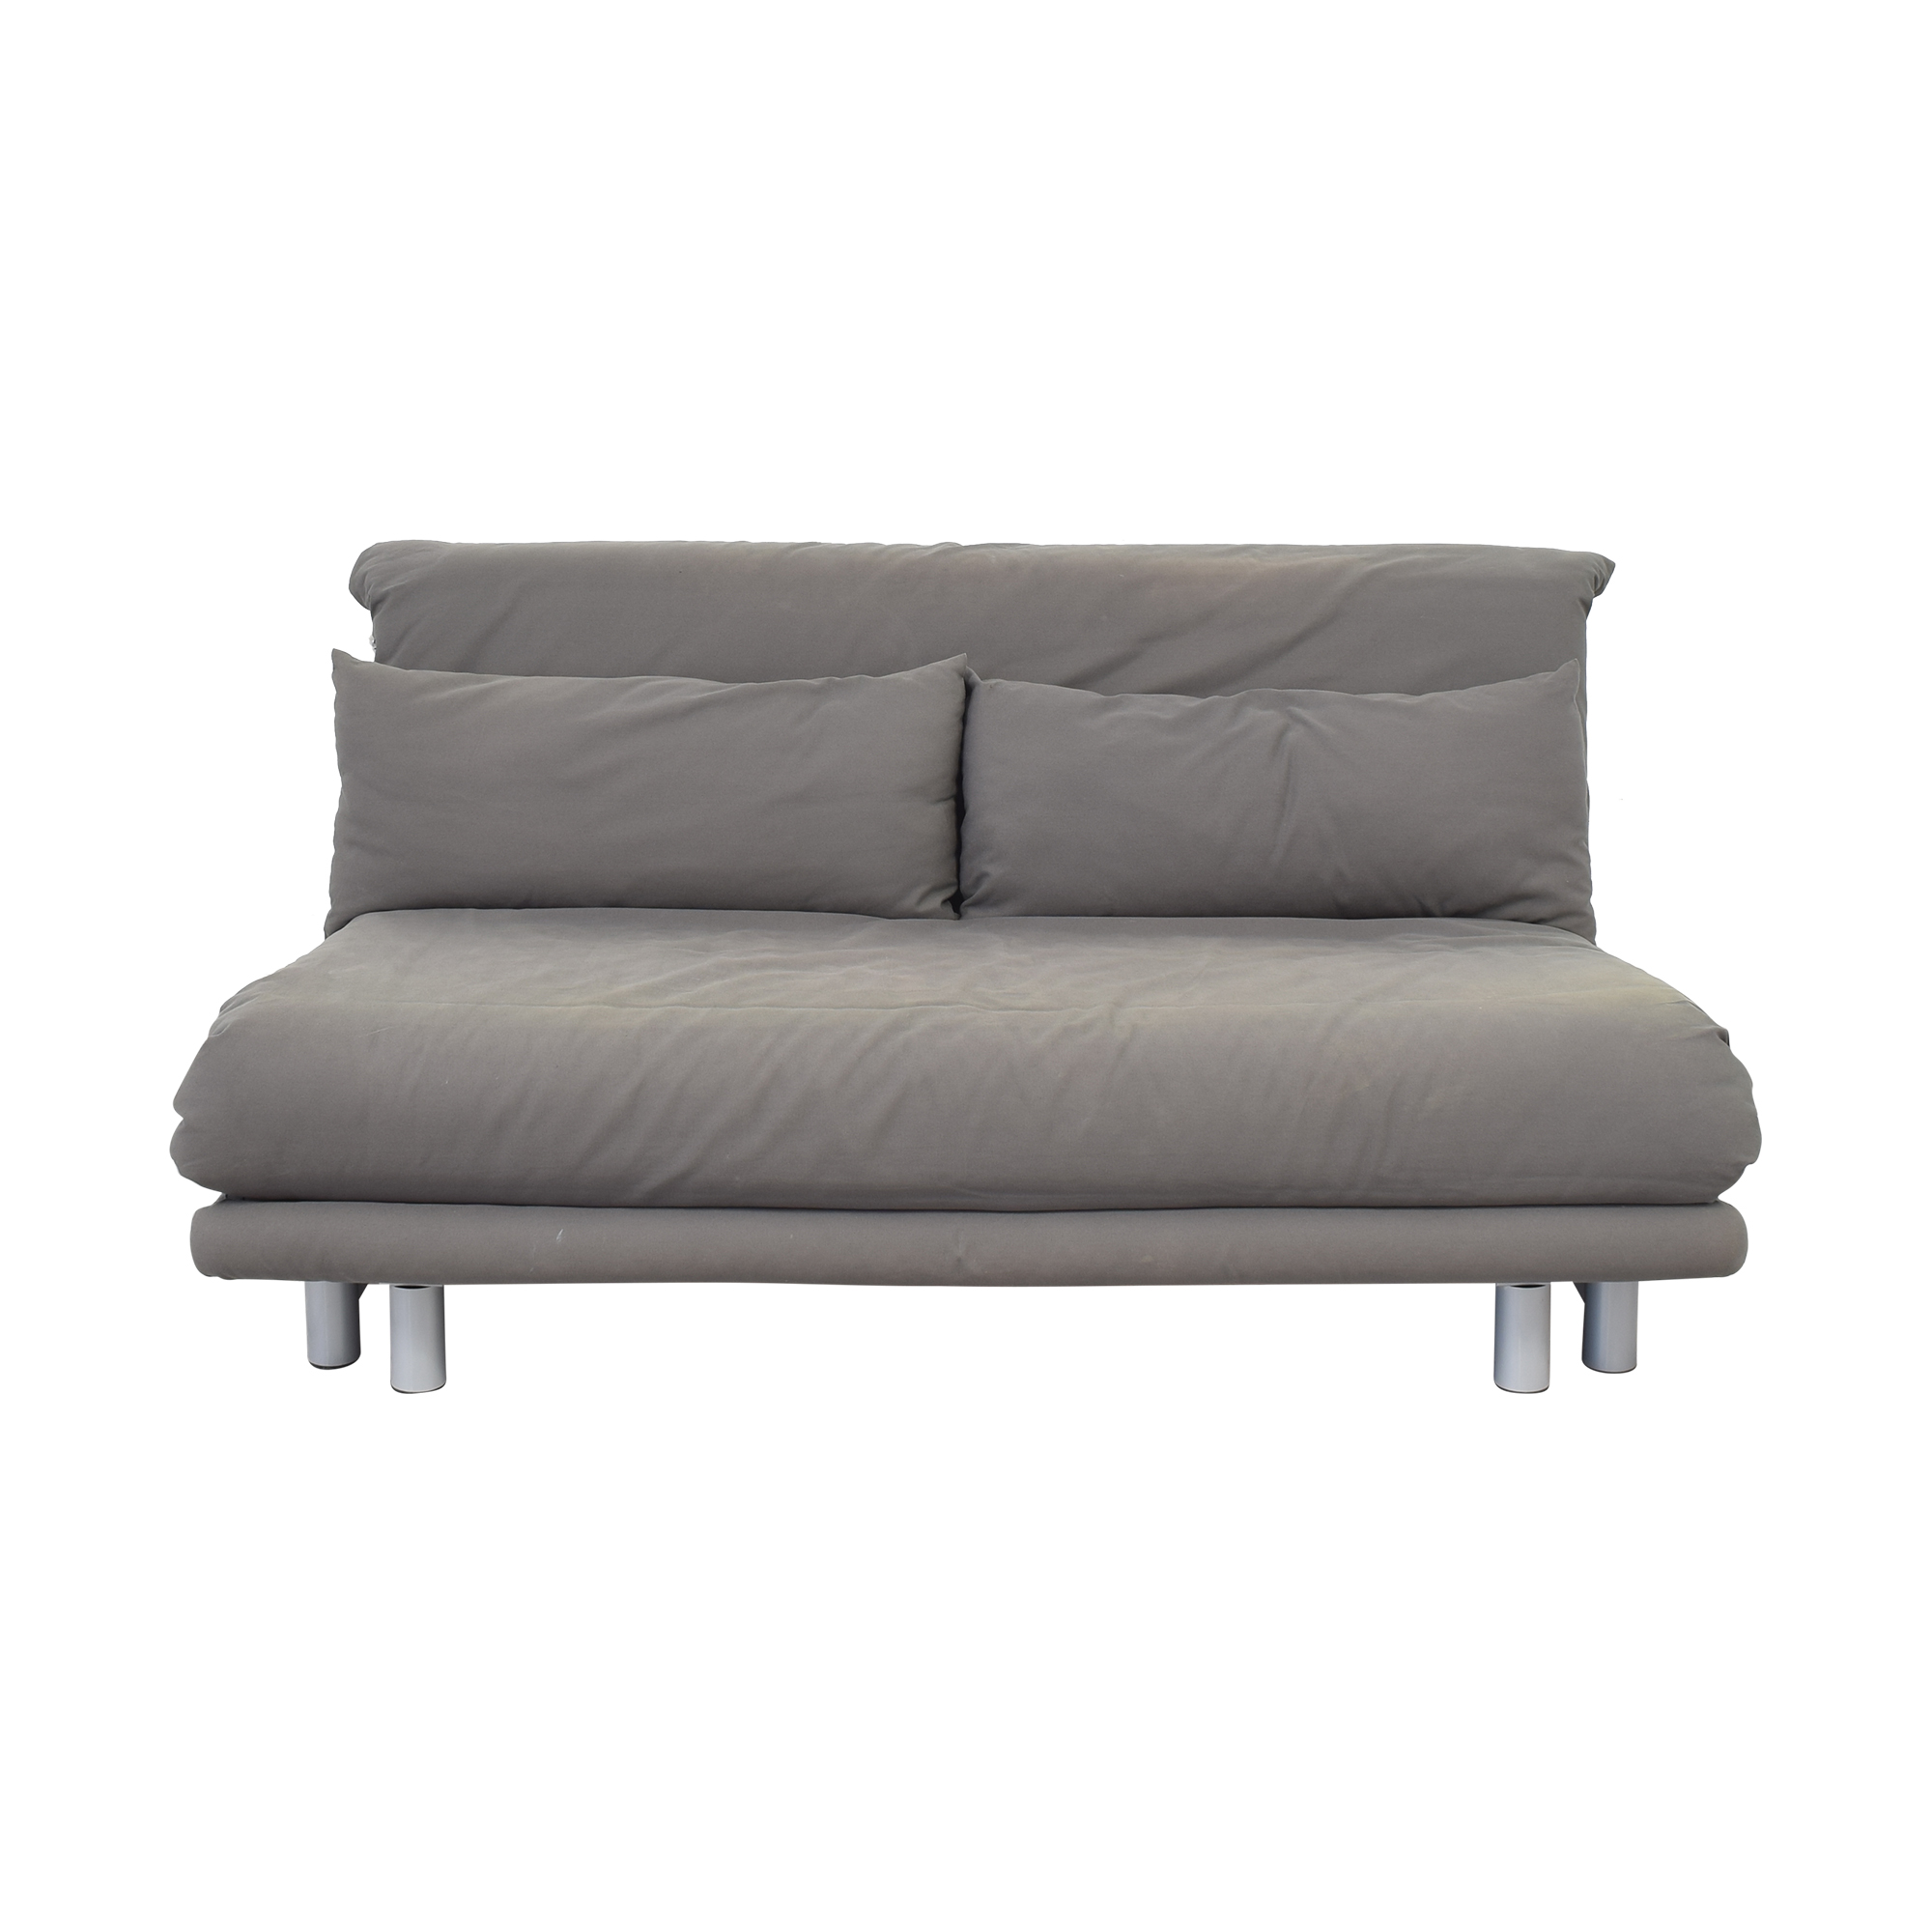 Ligne Roset Ligne Roset Multy Sofa Bed discount